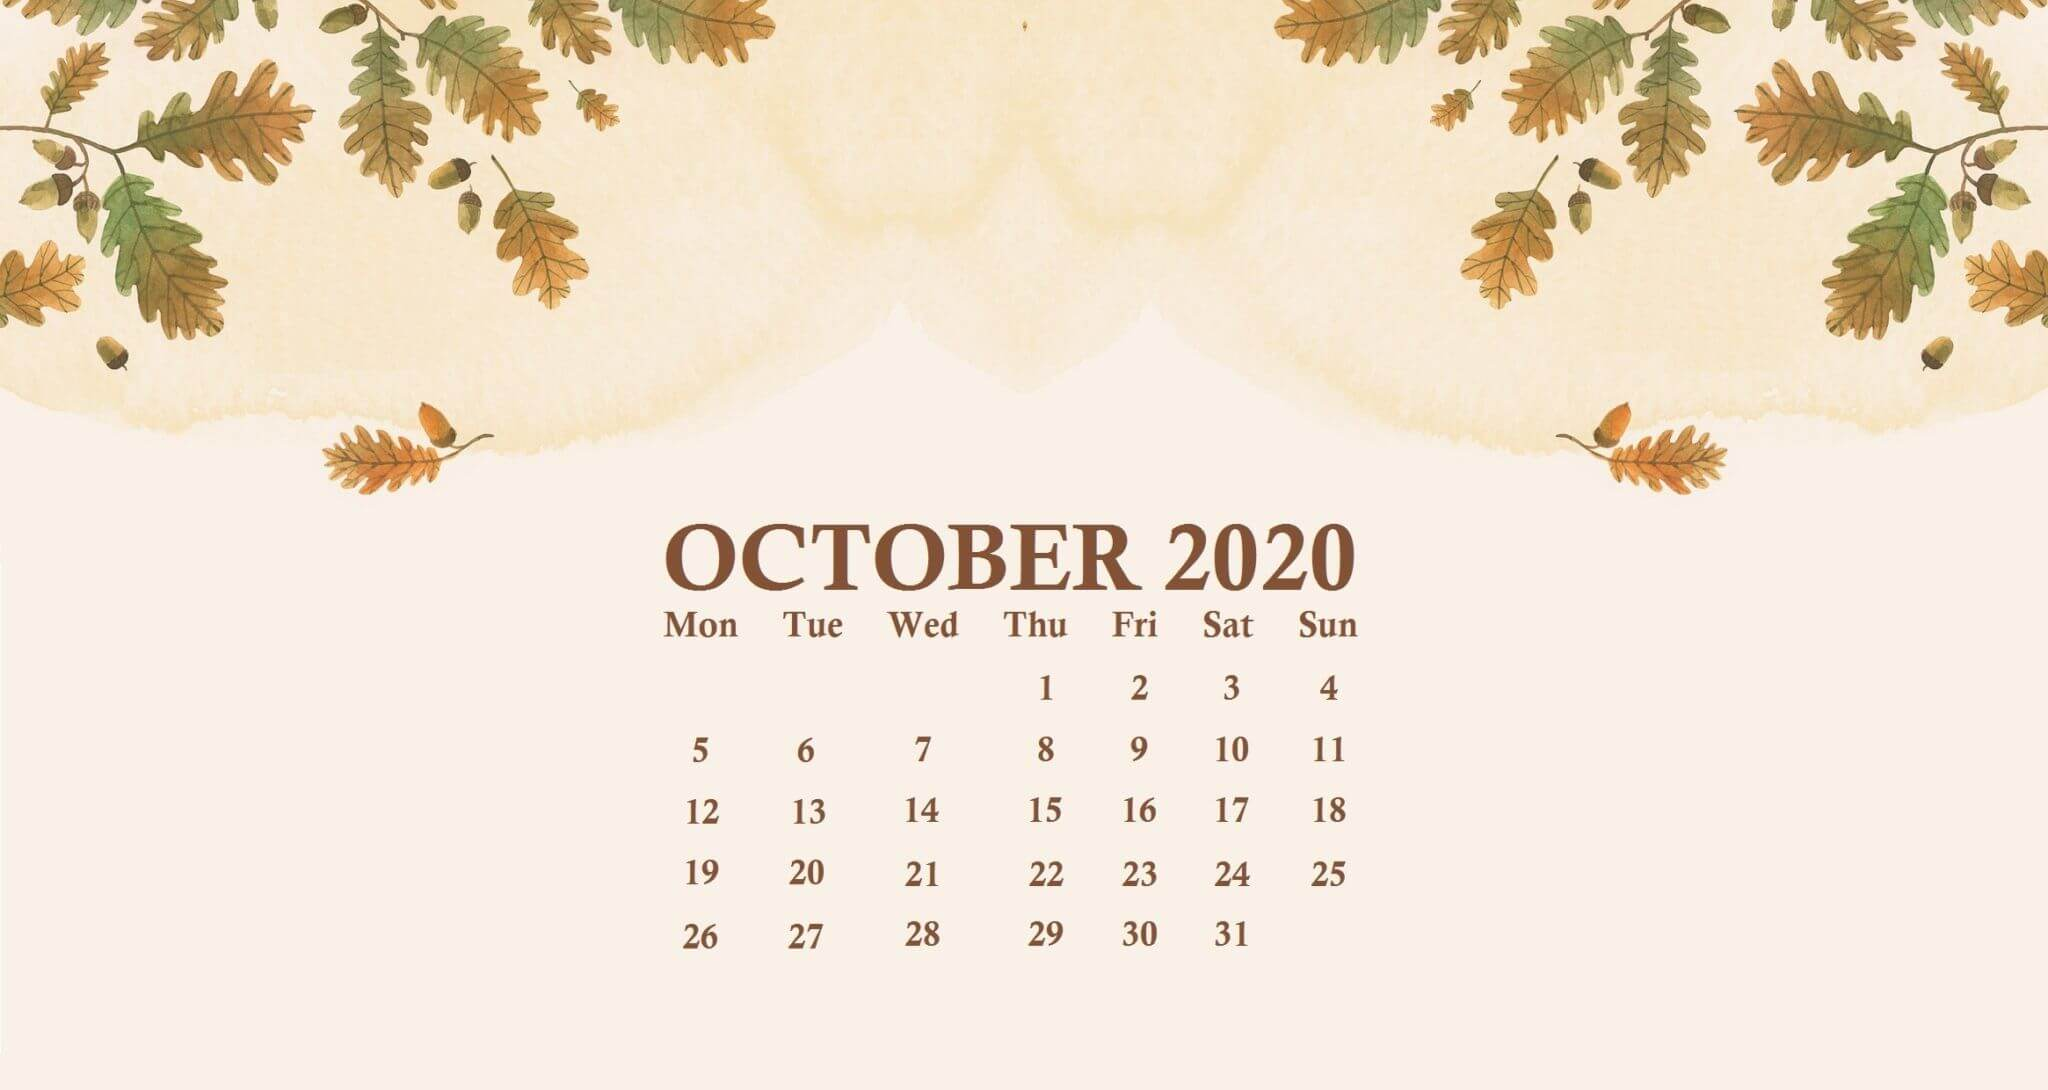 October 2020 Desktop Calendar Wallpaper